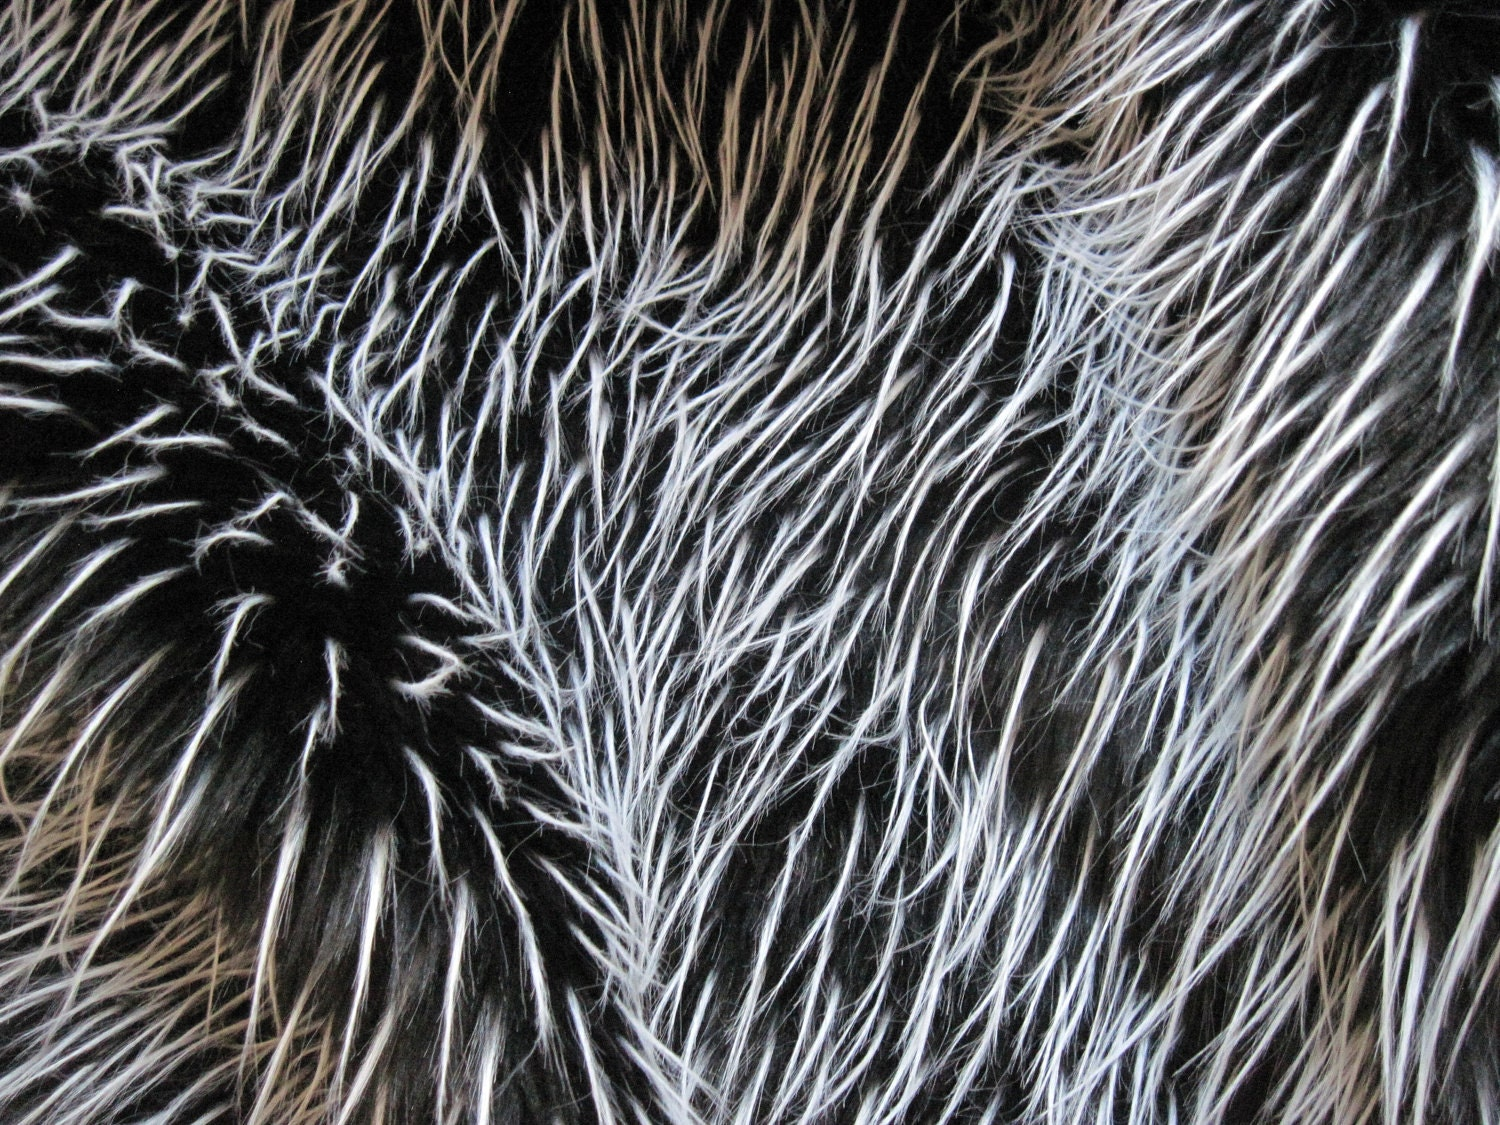 black and white feather faux fur fabric 1 yard piece by mbailis. Black Bedroom Furniture Sets. Home Design Ideas